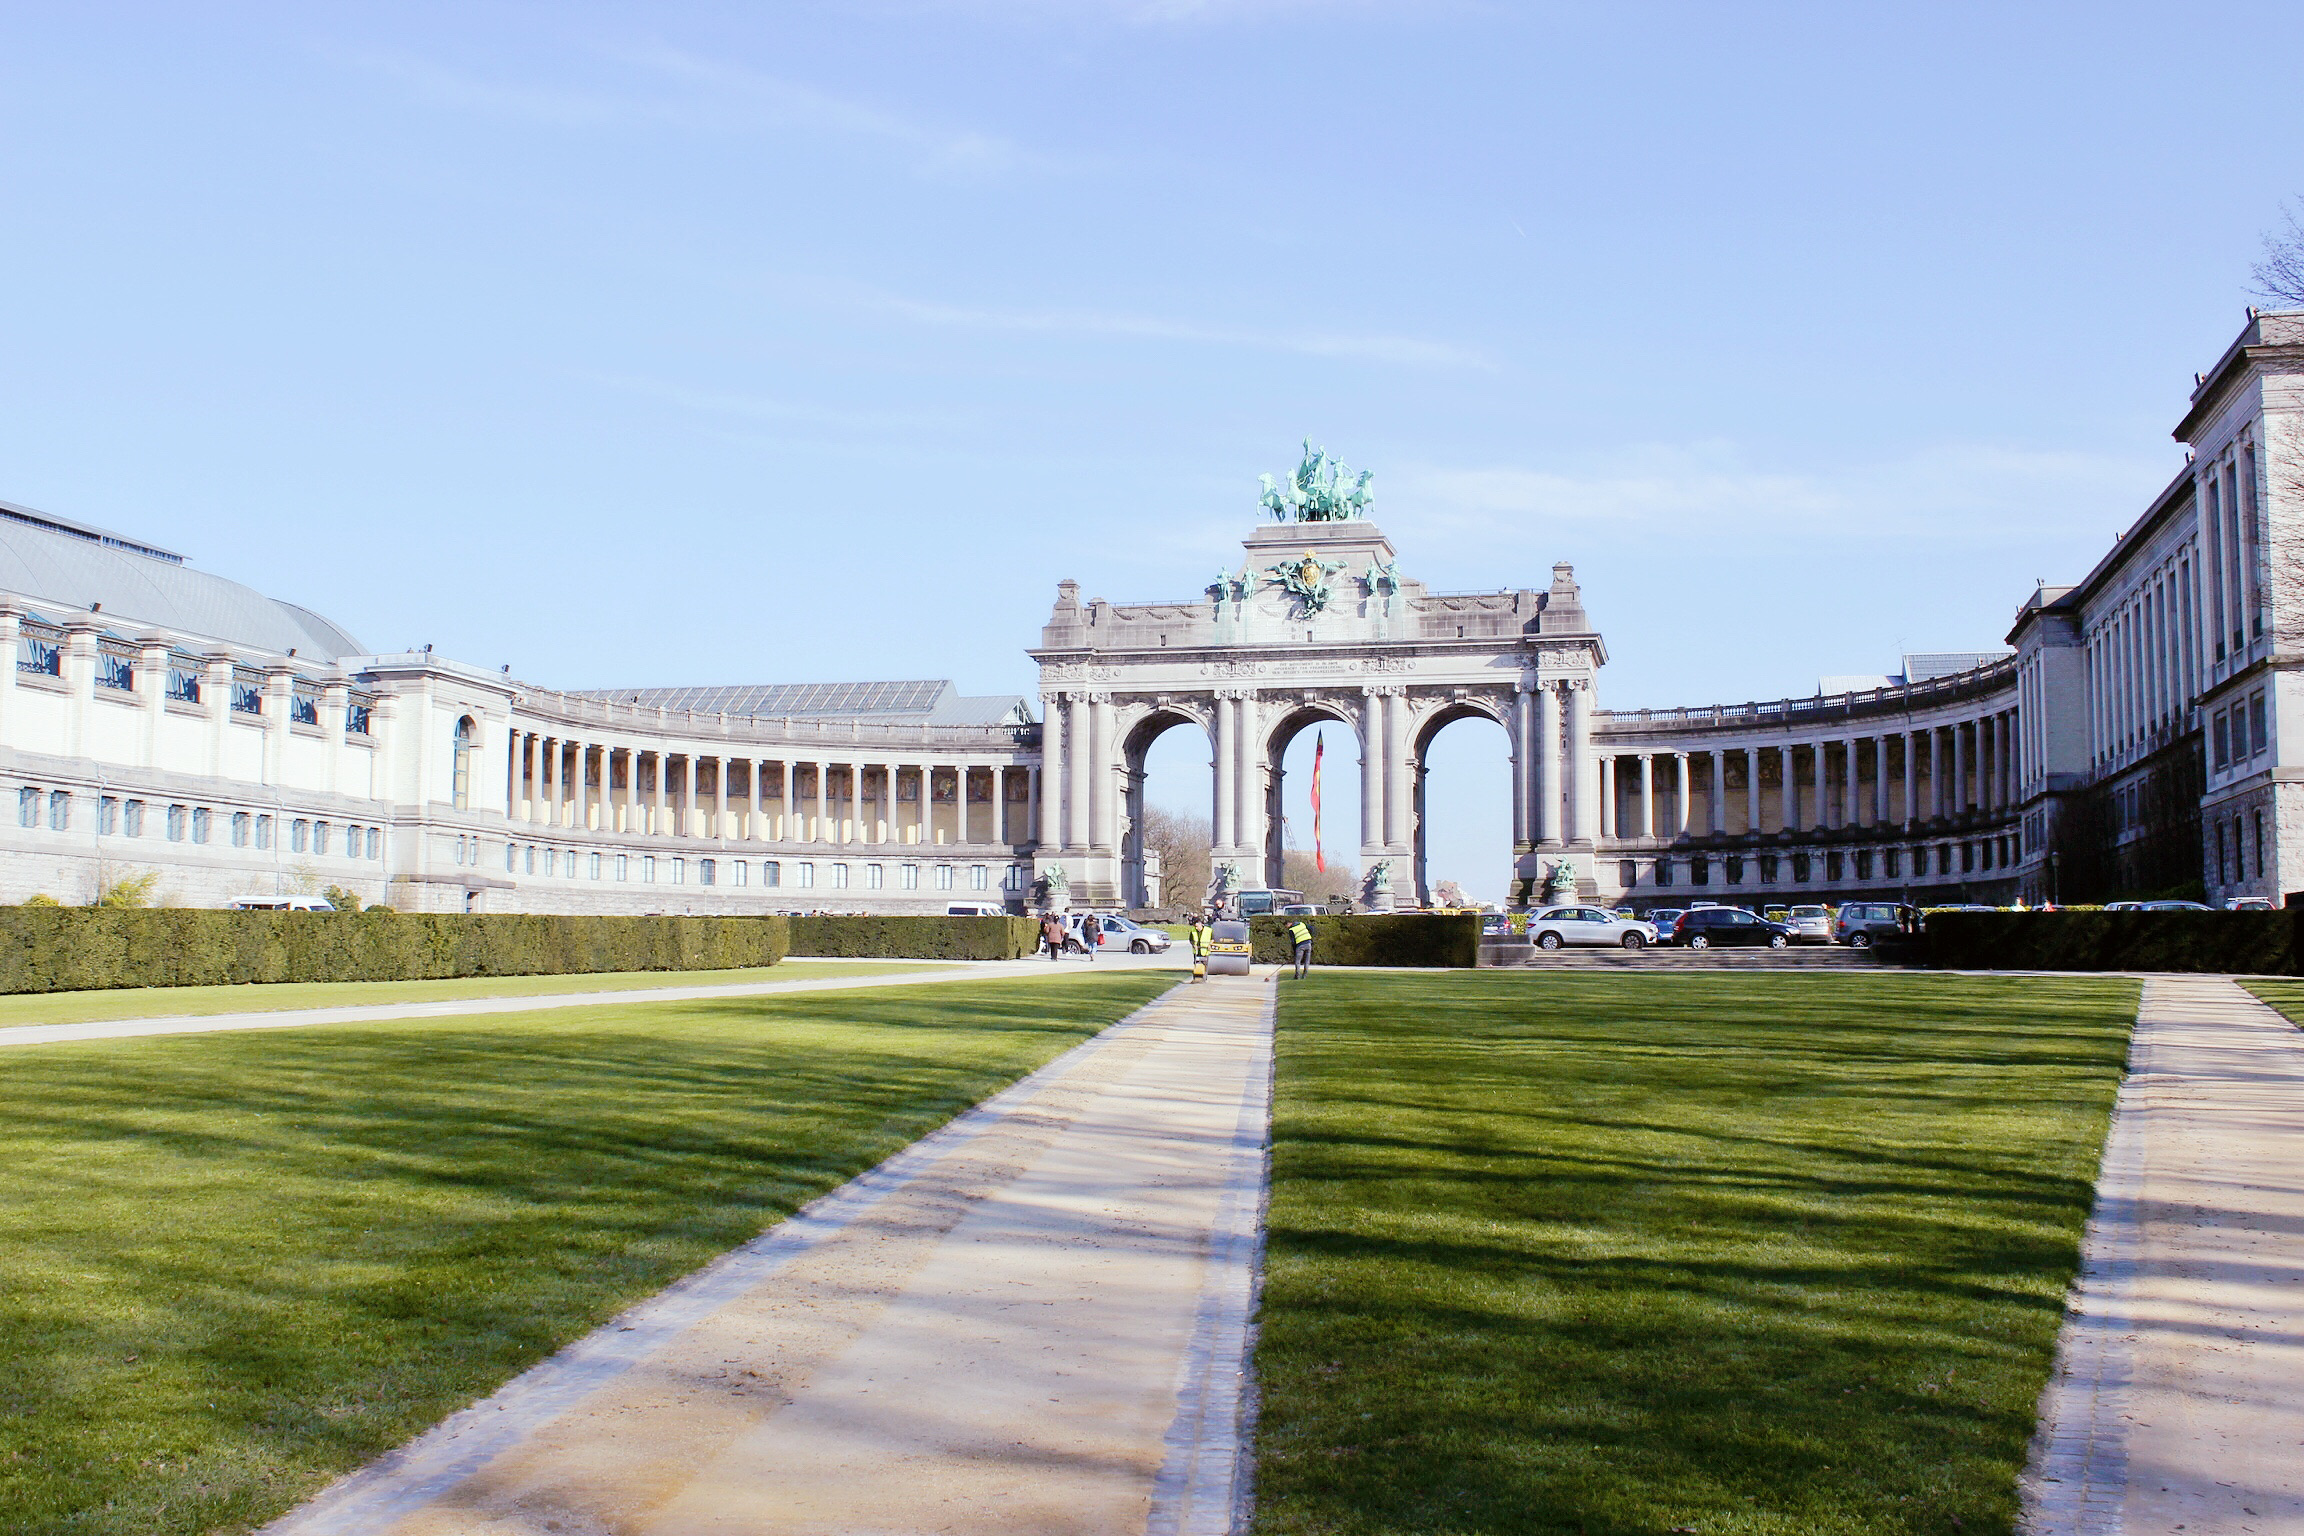 48 hours in Brussels with Europcar